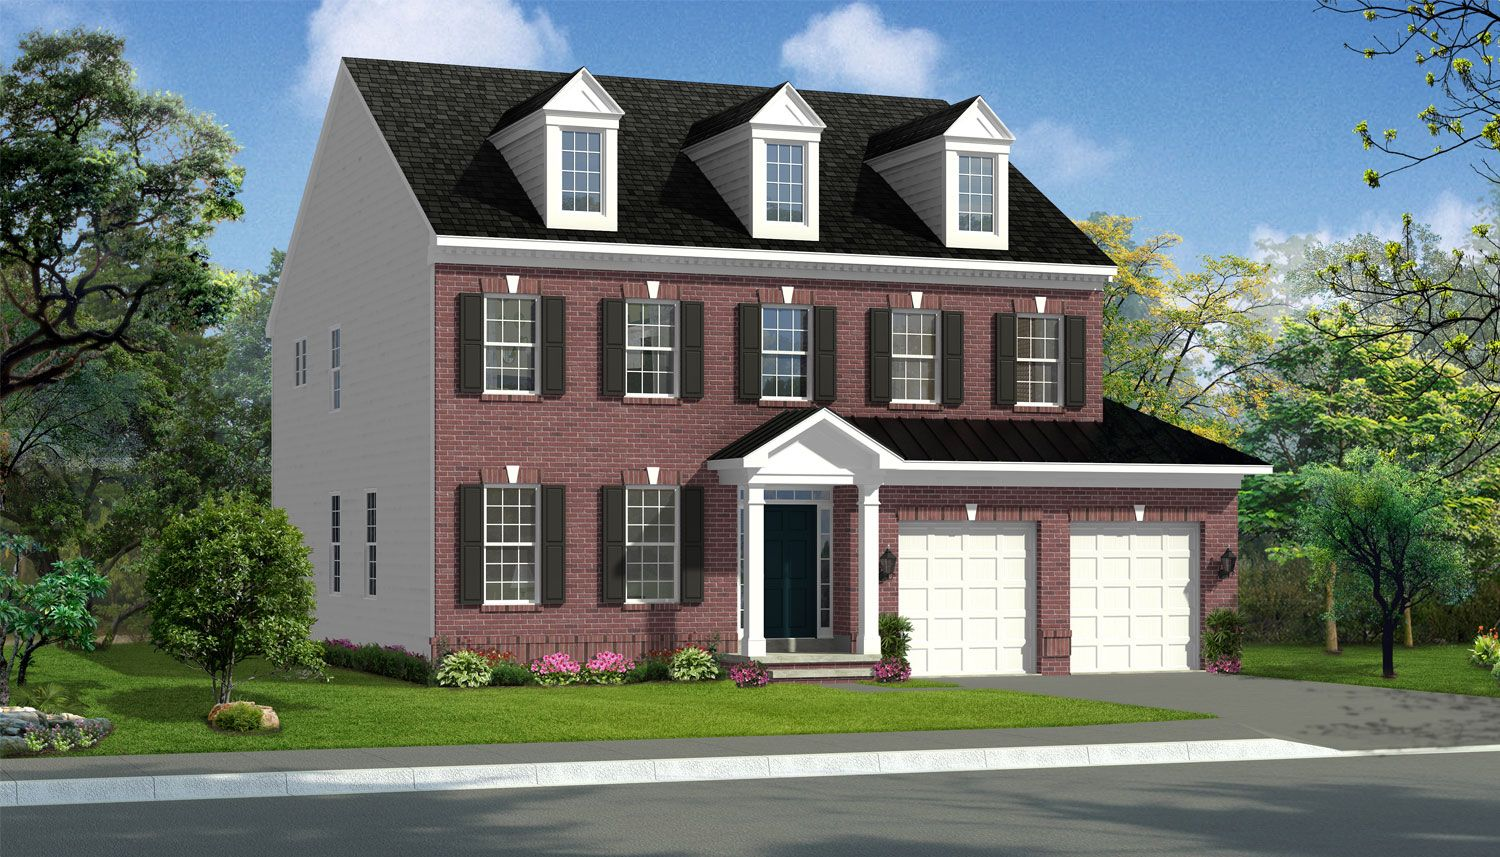 Unifamiliar por un Venta en Glenn Dale Crossing Single Family Homes - Belmont Ii 7771 Hubble Drive Lanham, Maryland 20706 United States